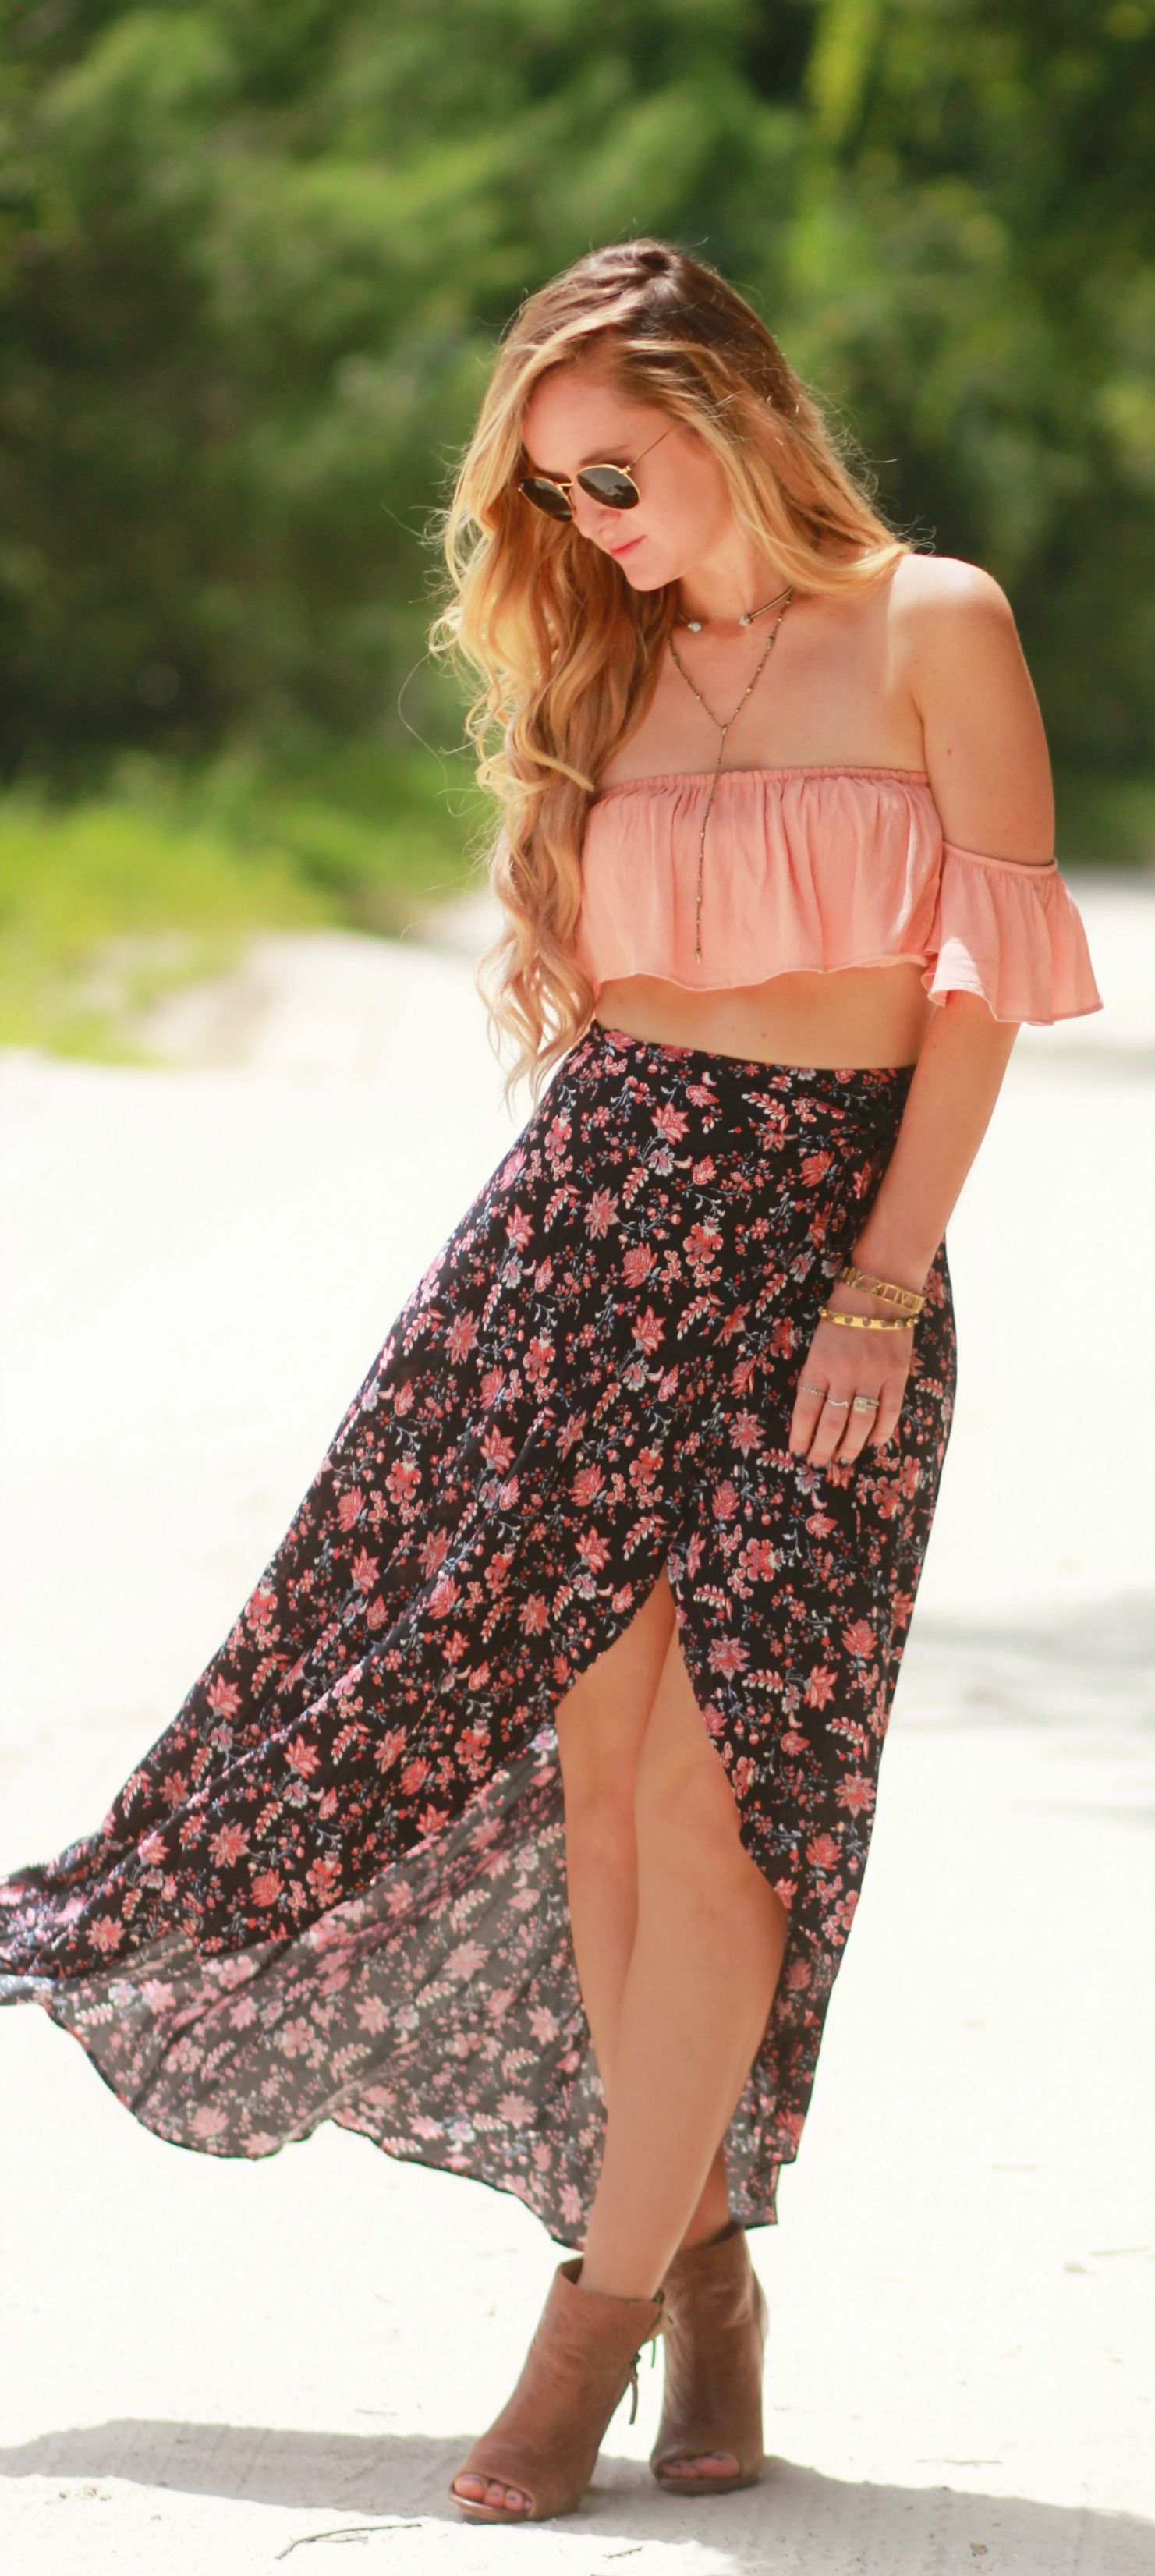 Boho Look Summer Bohemian Outfit My Looks Boho Summer Outfits